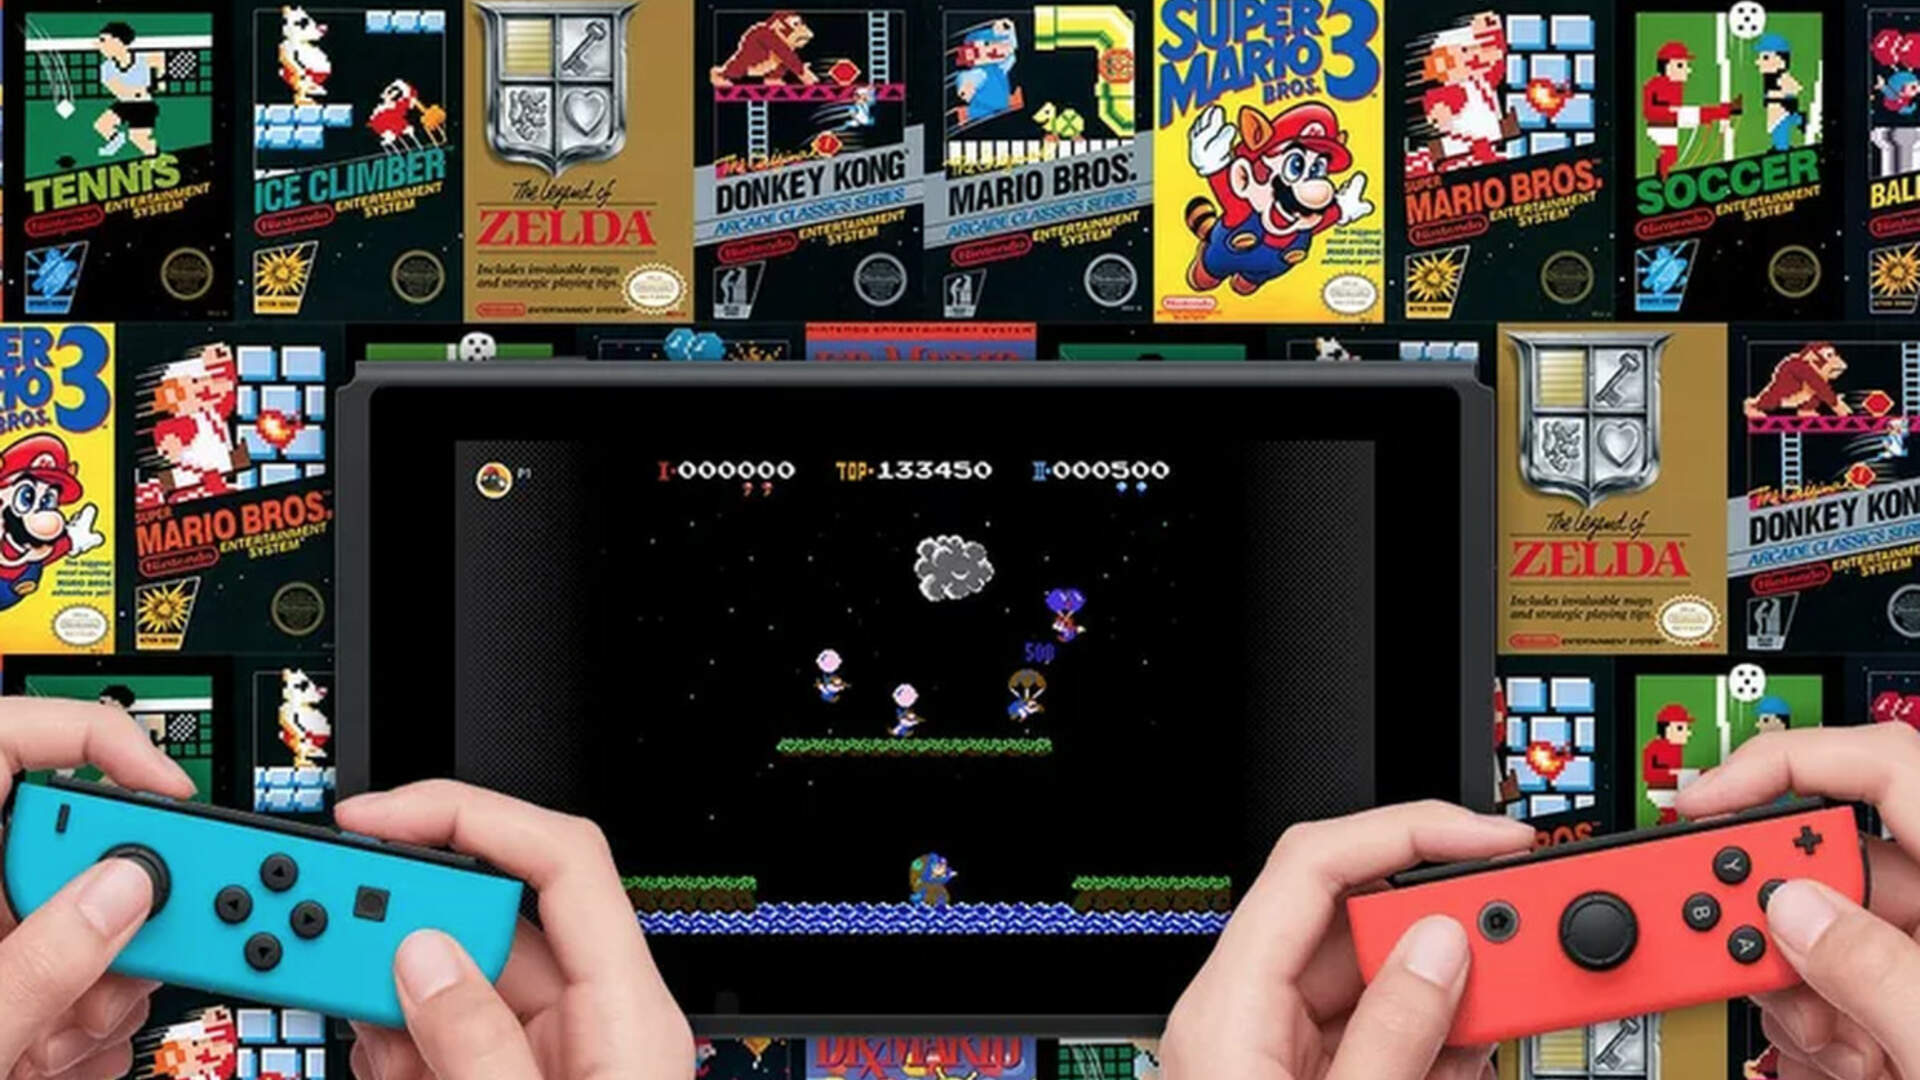 NES Open Tournament Golf and Two Other NES Games Hit Nintendo Switch Online Next Week